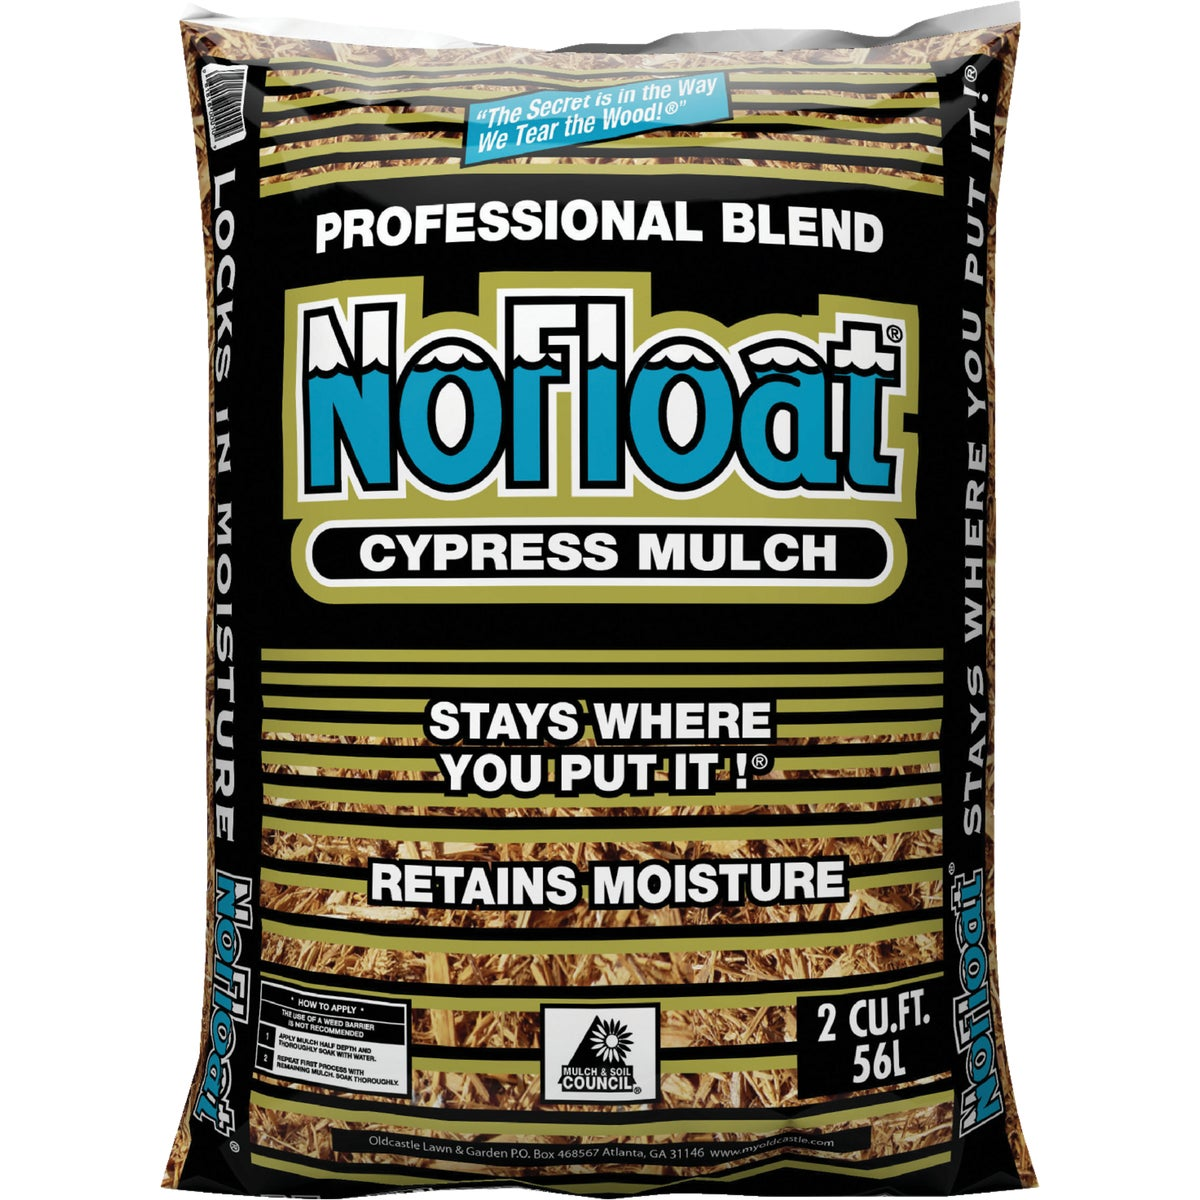 2 CU FT CYPRESS MULCH - 52050045 by Old Castle Retail